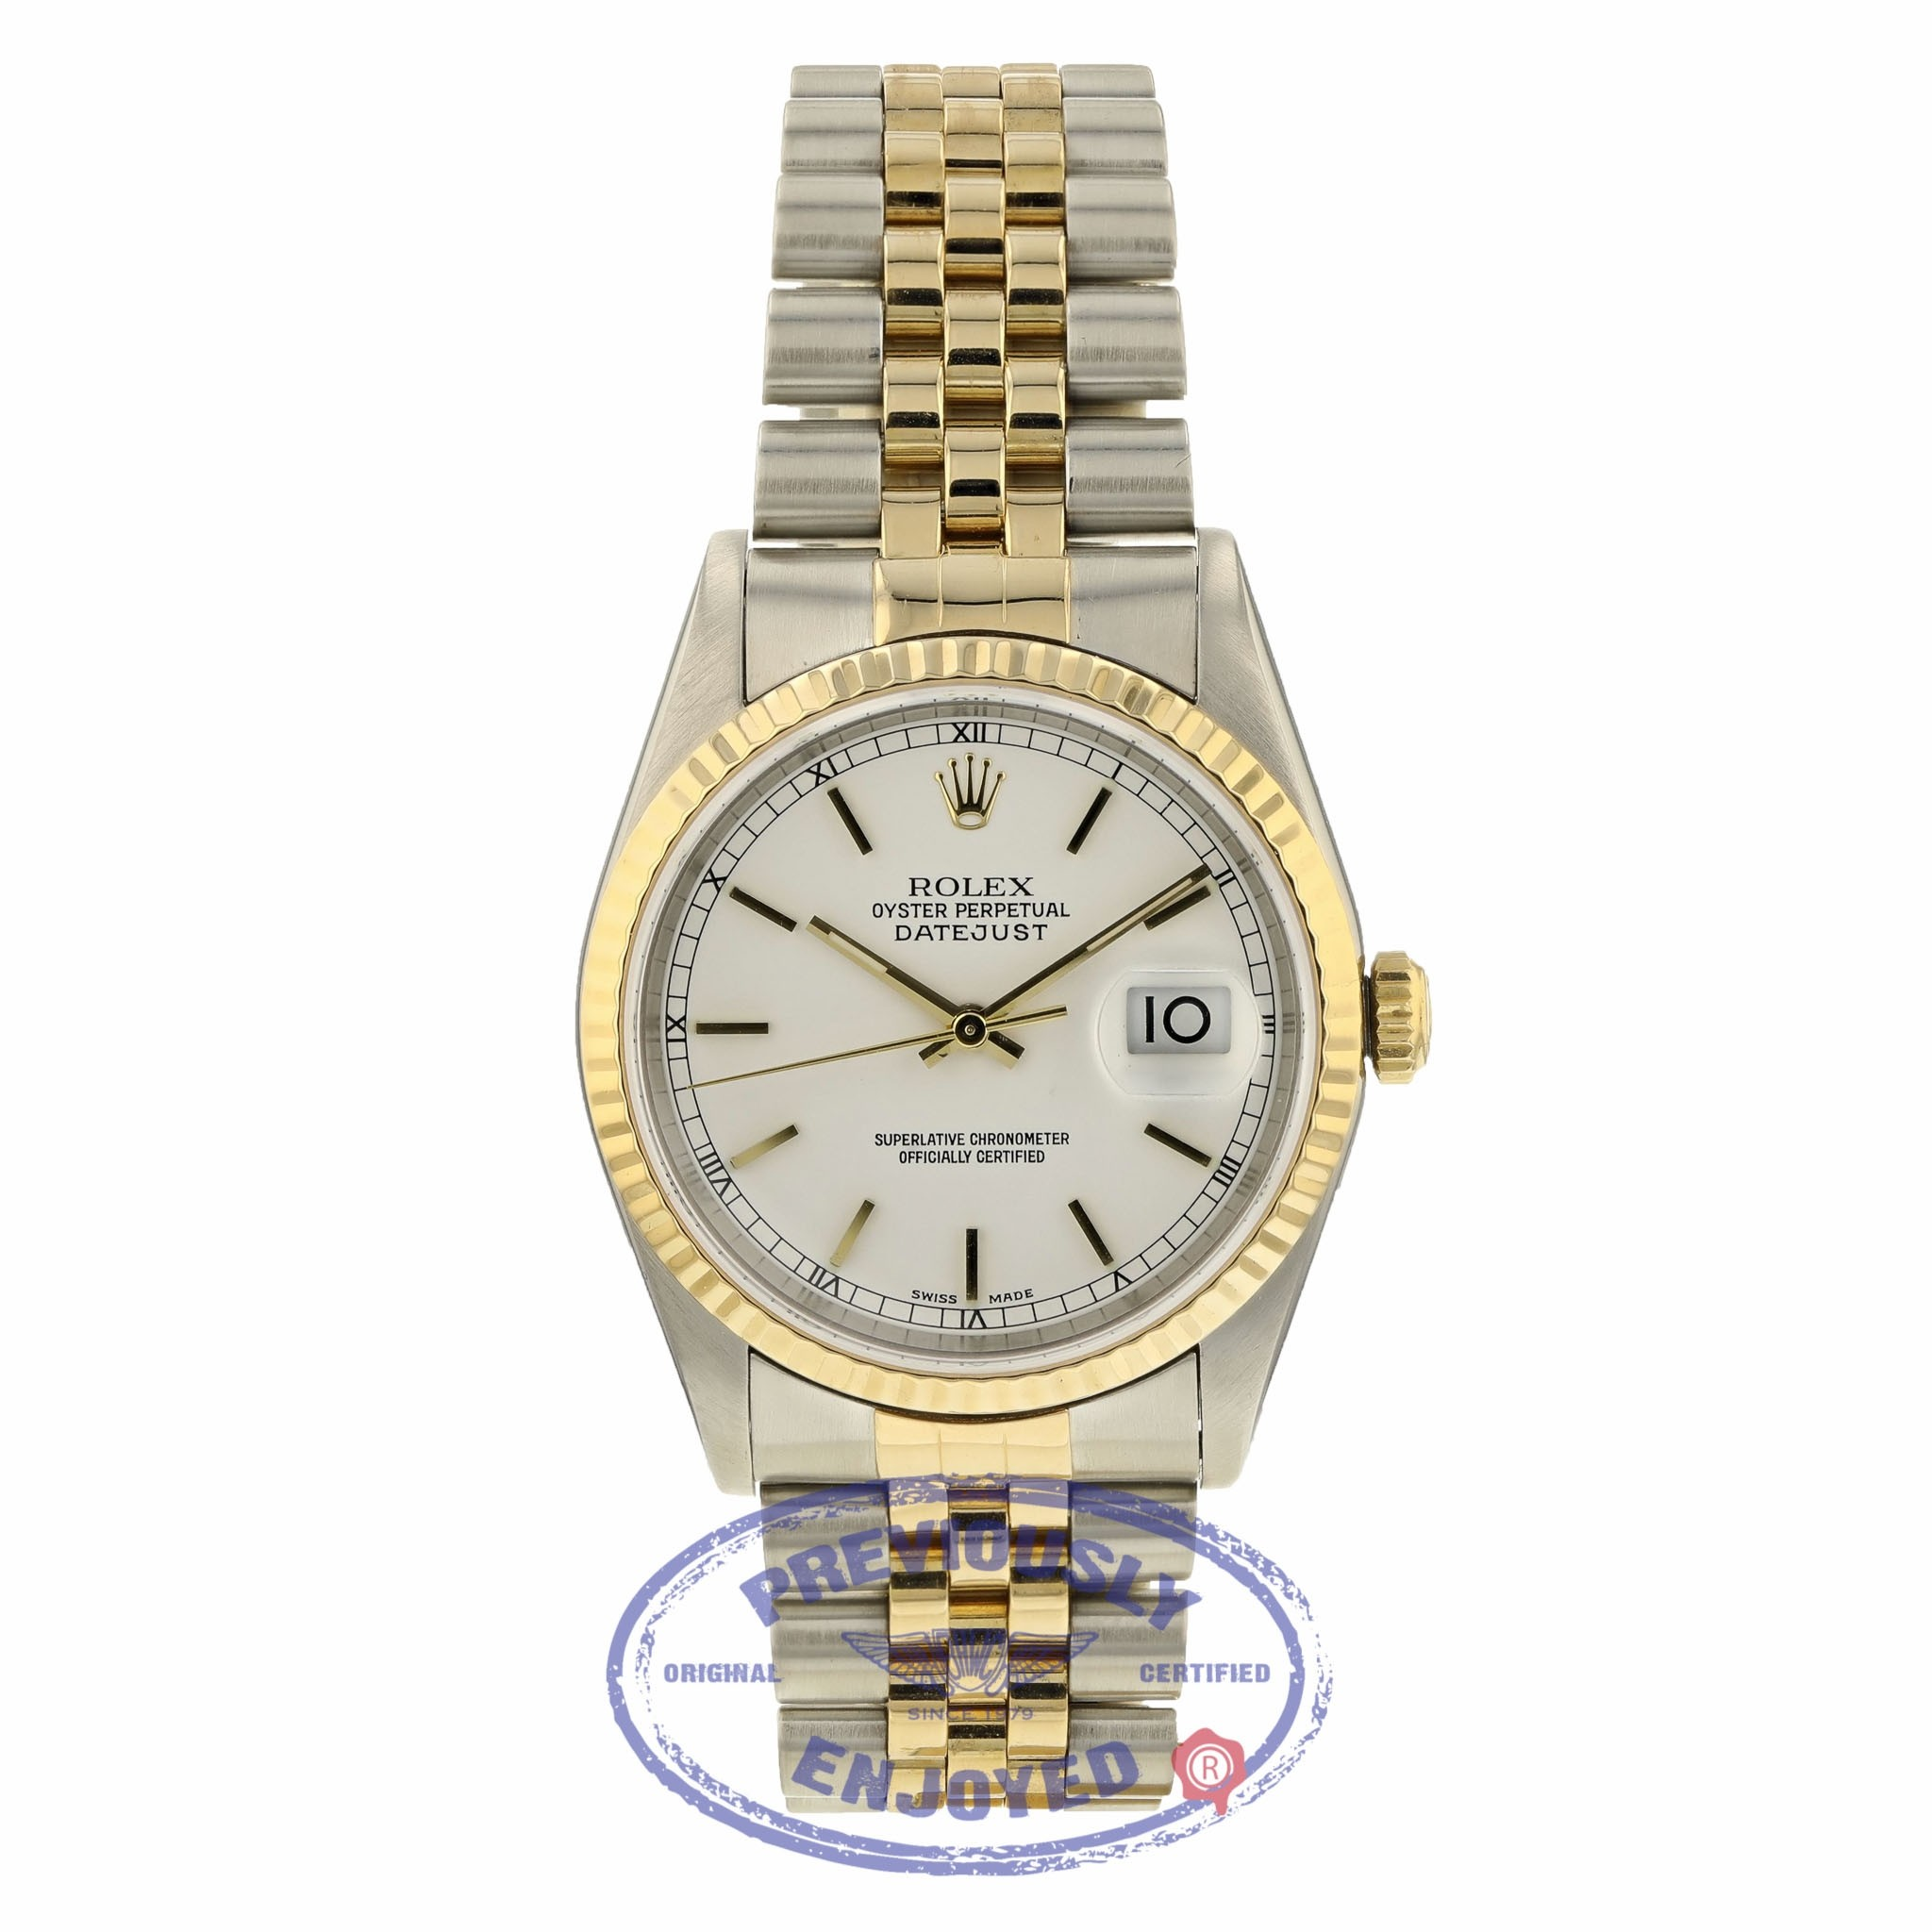 Rolex Datejust 36MM 18k Yellow Gold Stainless Steel Fluted Bezel White Dial Index Markers 16233 1EJPR9 - Beverly Hills Watch Company